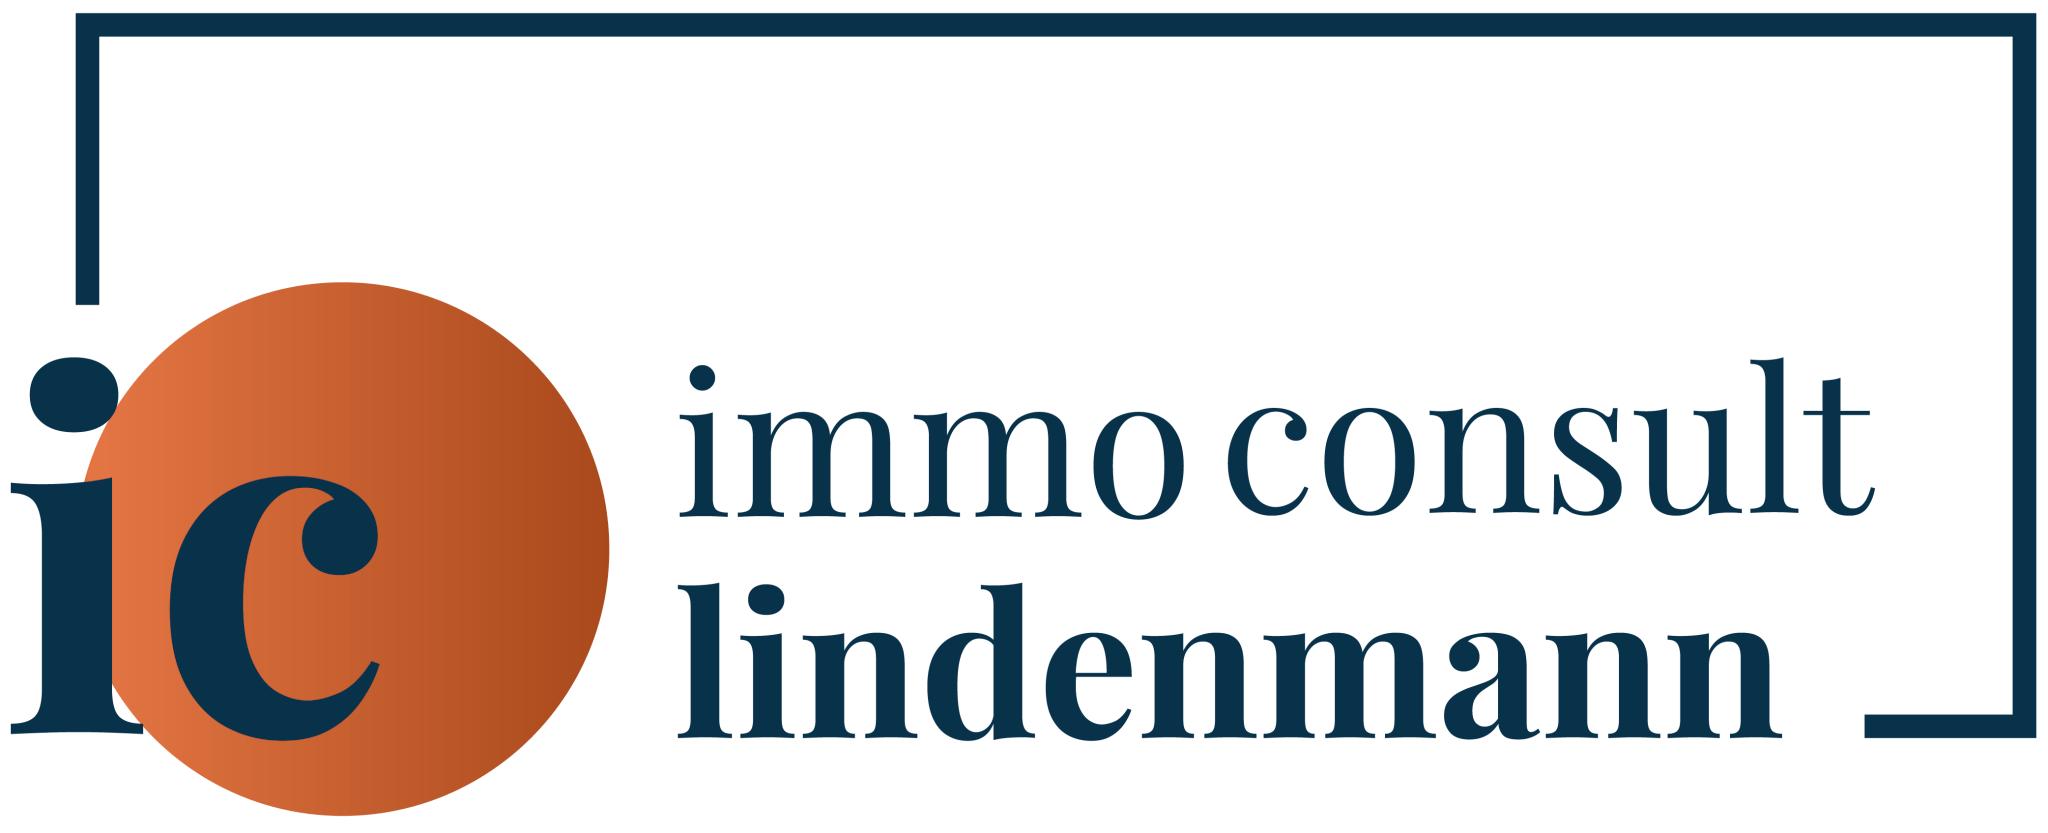 immo consult lindenmann